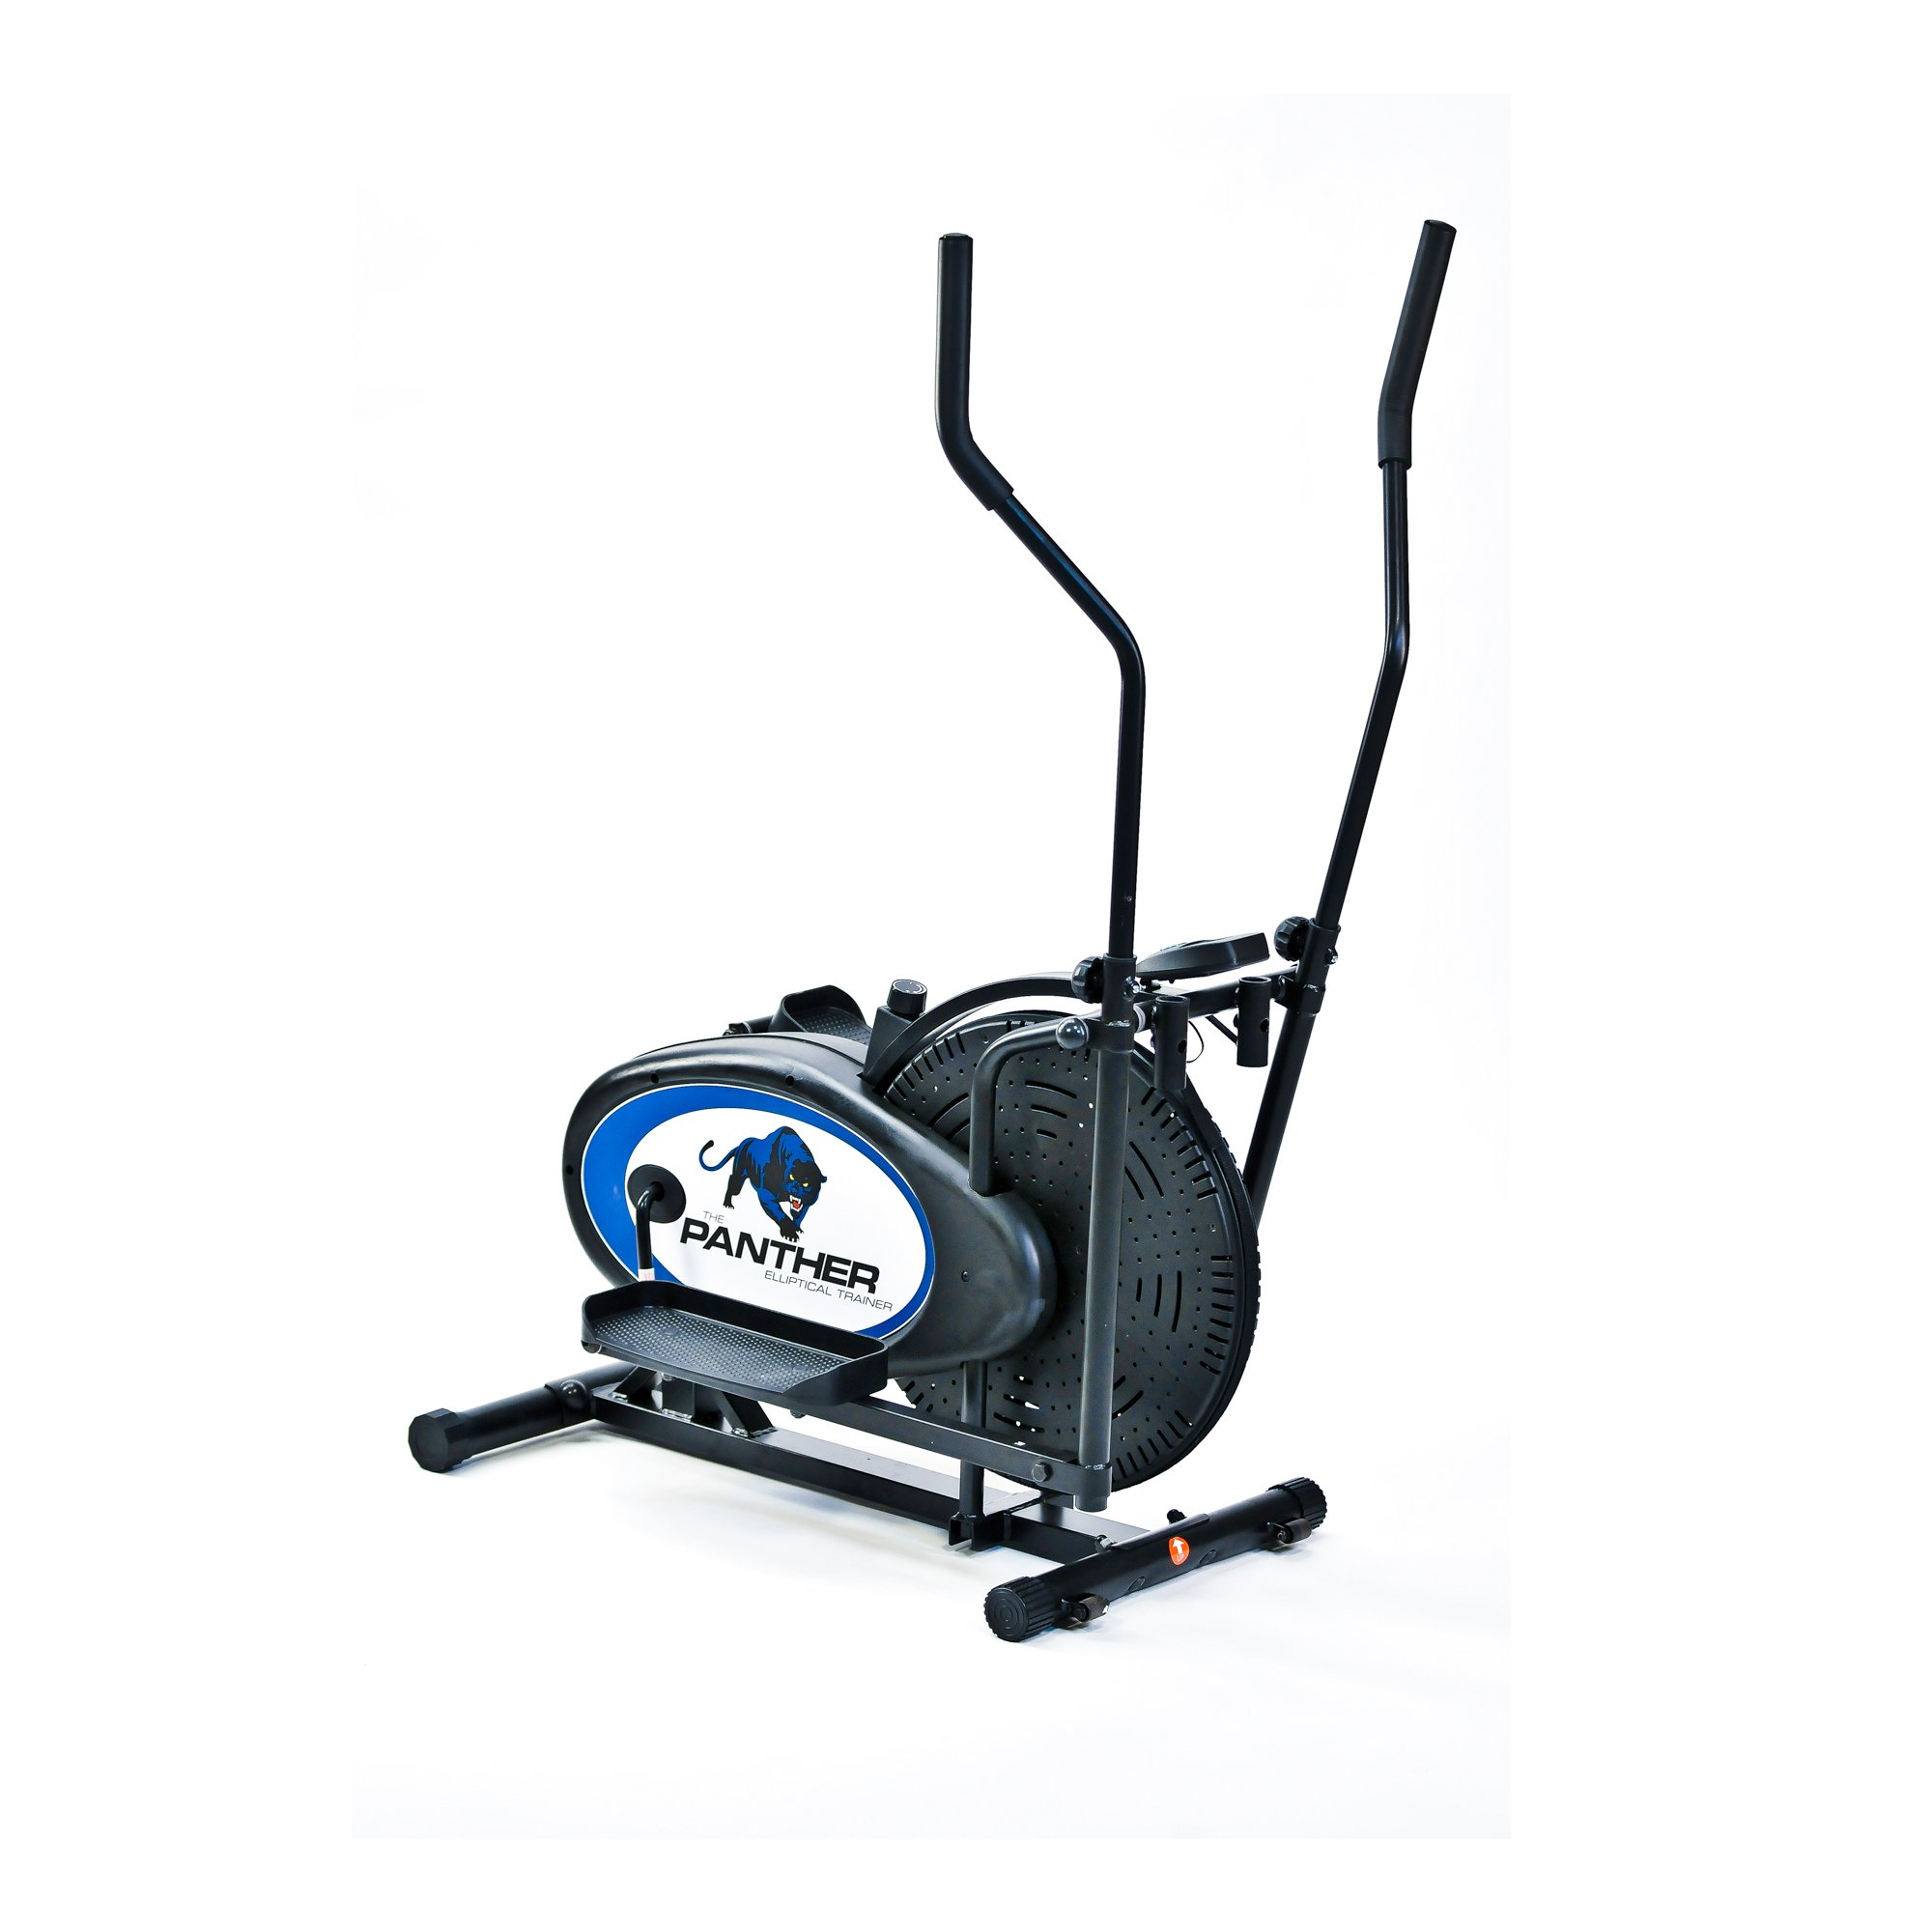 Tristar Products Panther Elliptical Trainer by Tristar Products